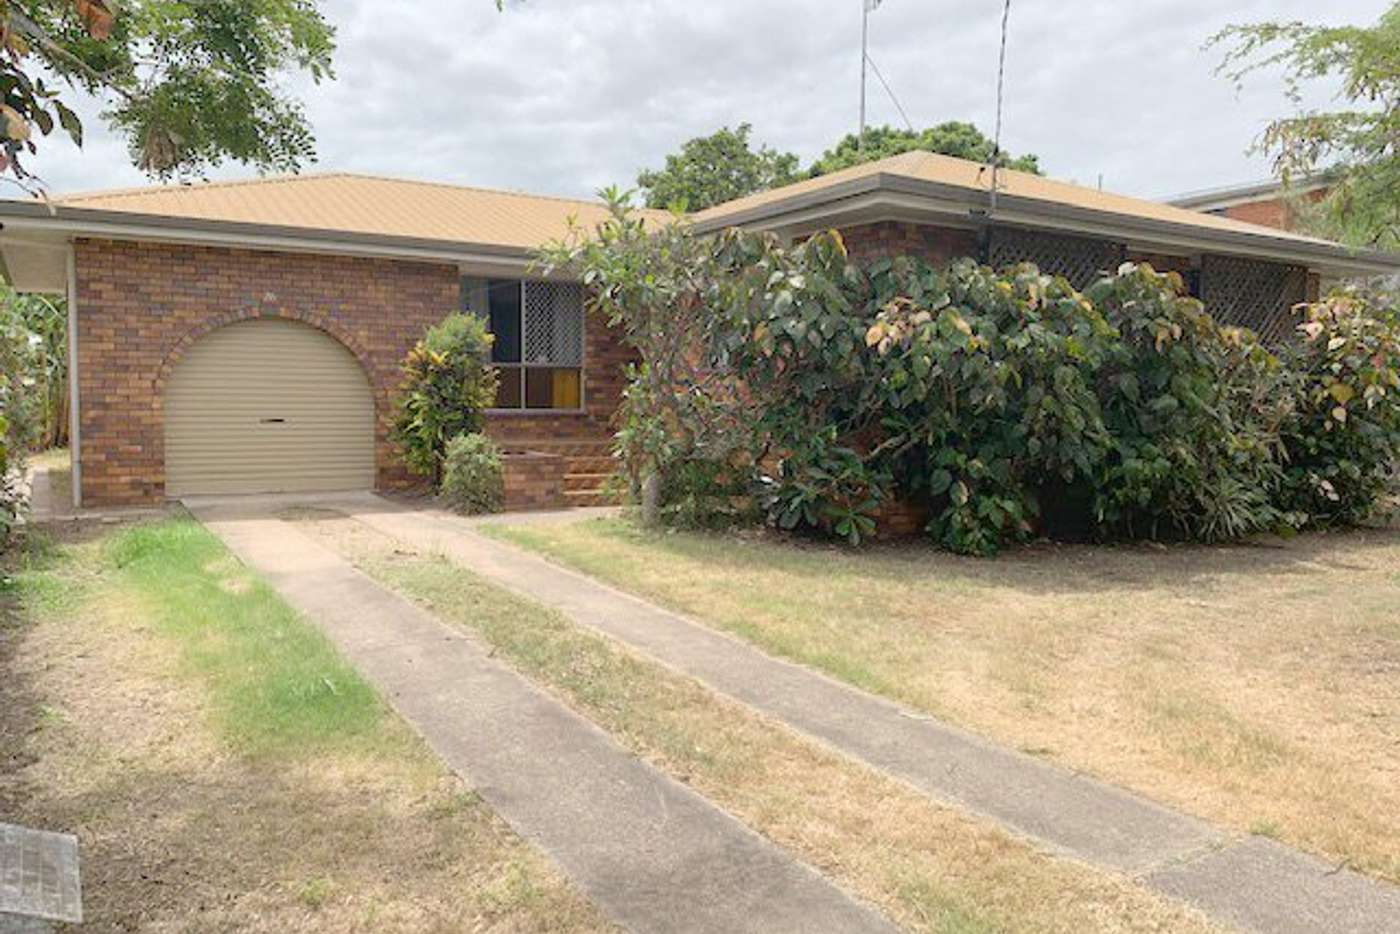 Main view of Homely house listing, 26 Zephyr Street, Scarness QLD 4655